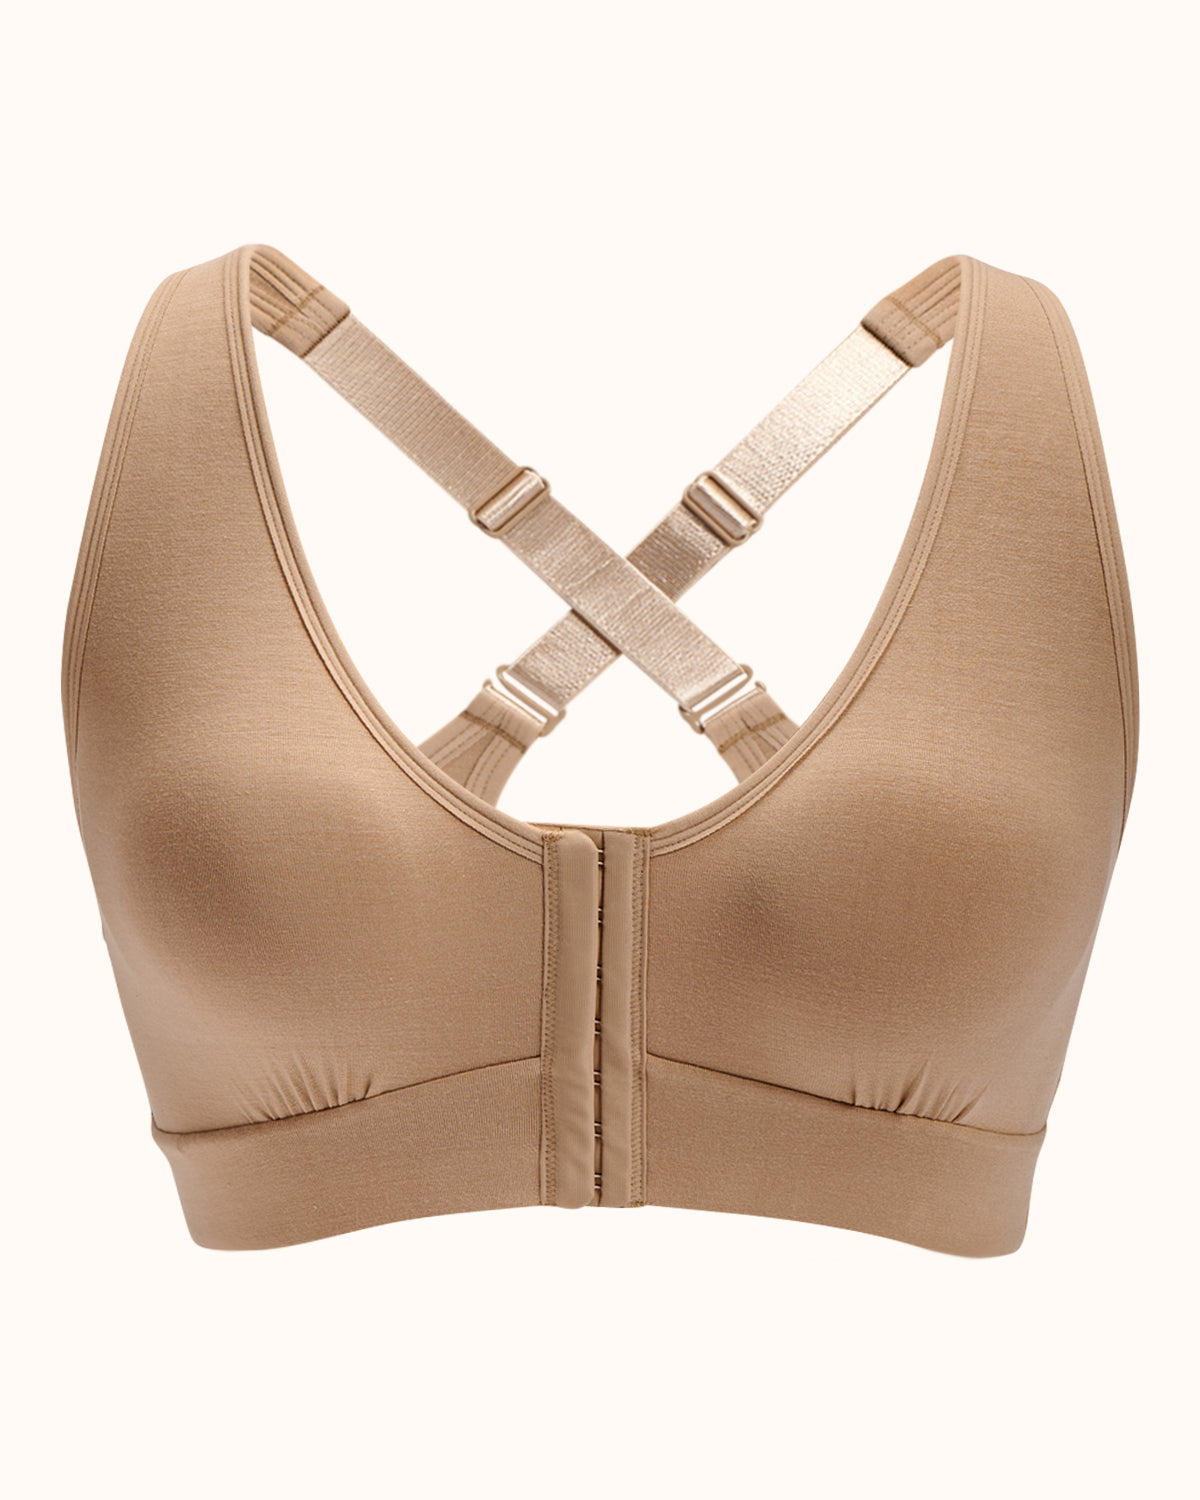 Sand, pocketed front closure wireless bra with soft modal material and convertible & adjustable straps.